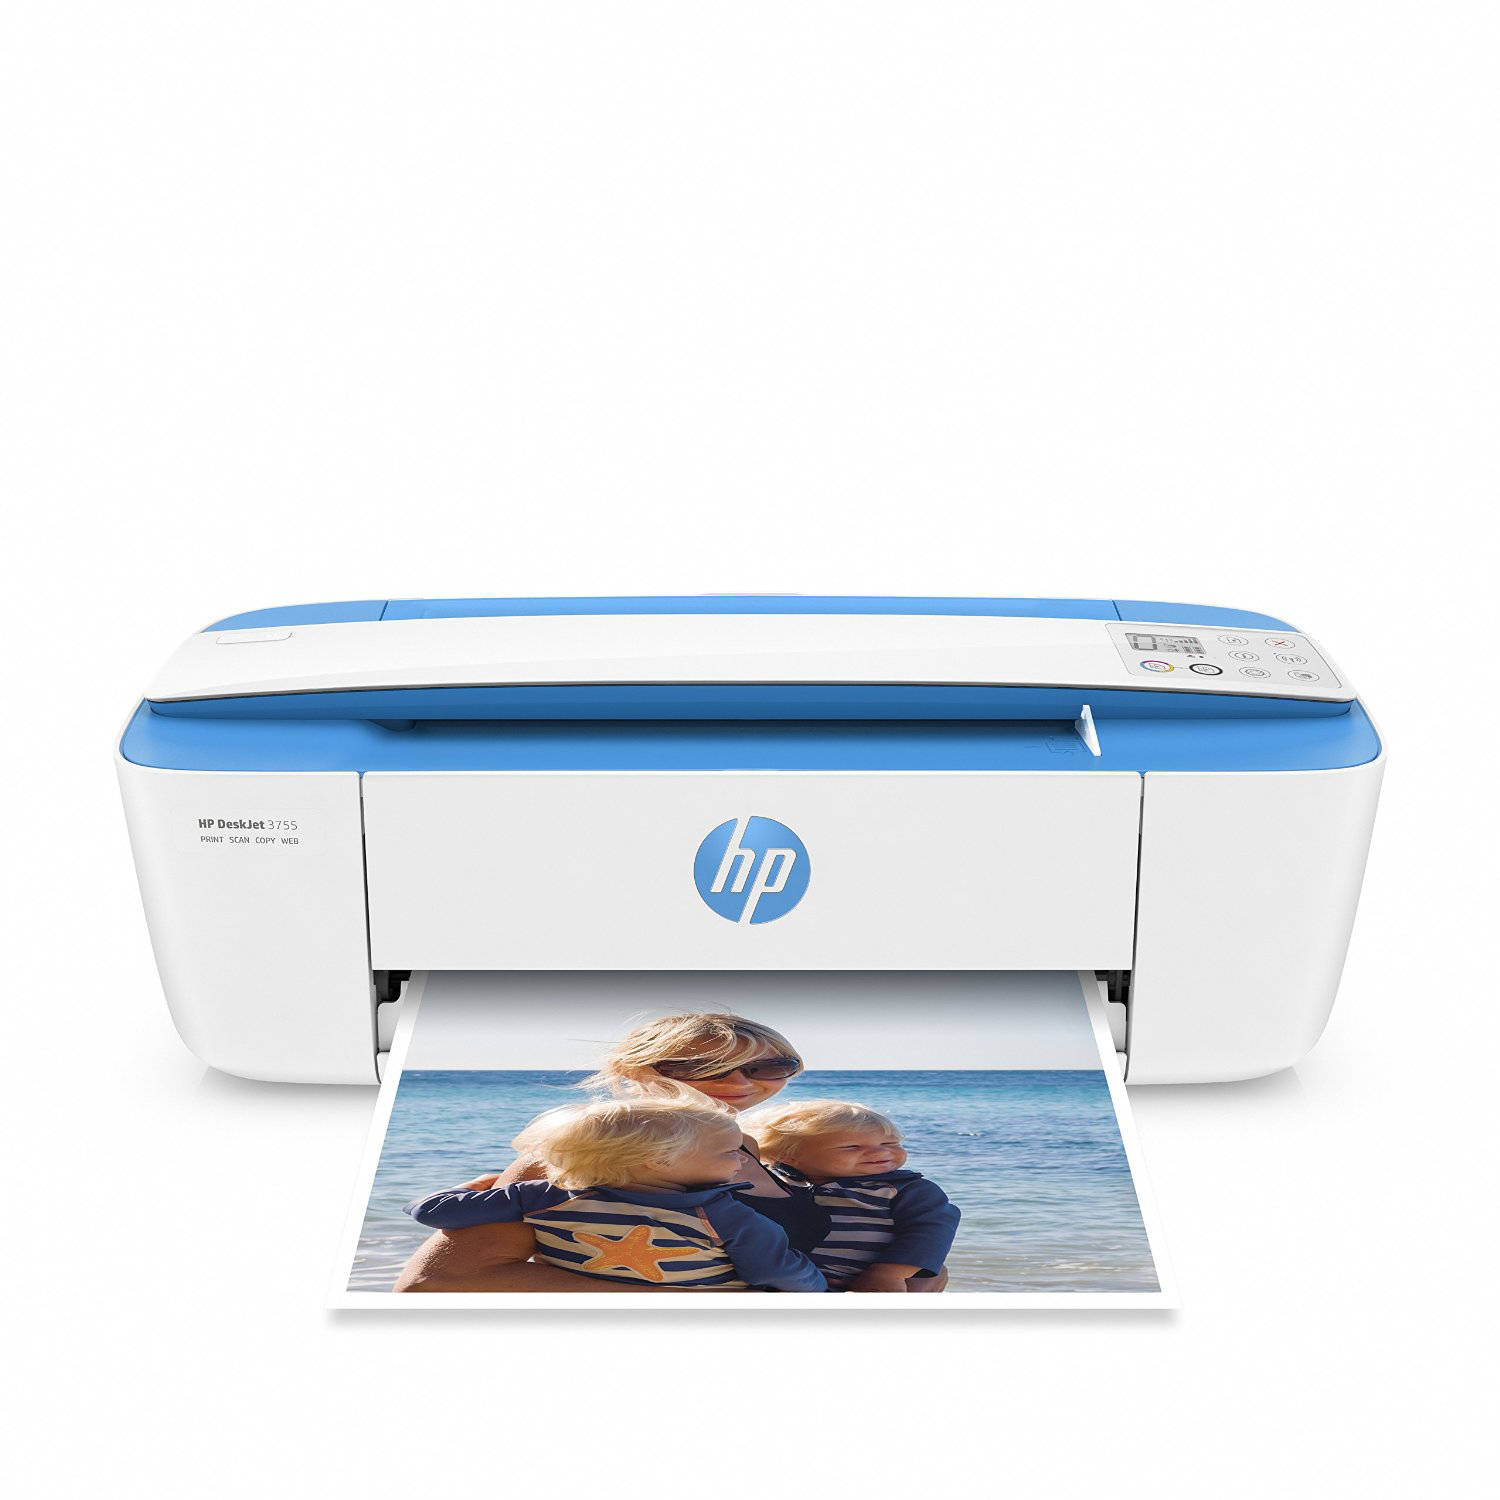 HP DeskJet 3752 All-in-One Printer - Walmart.com